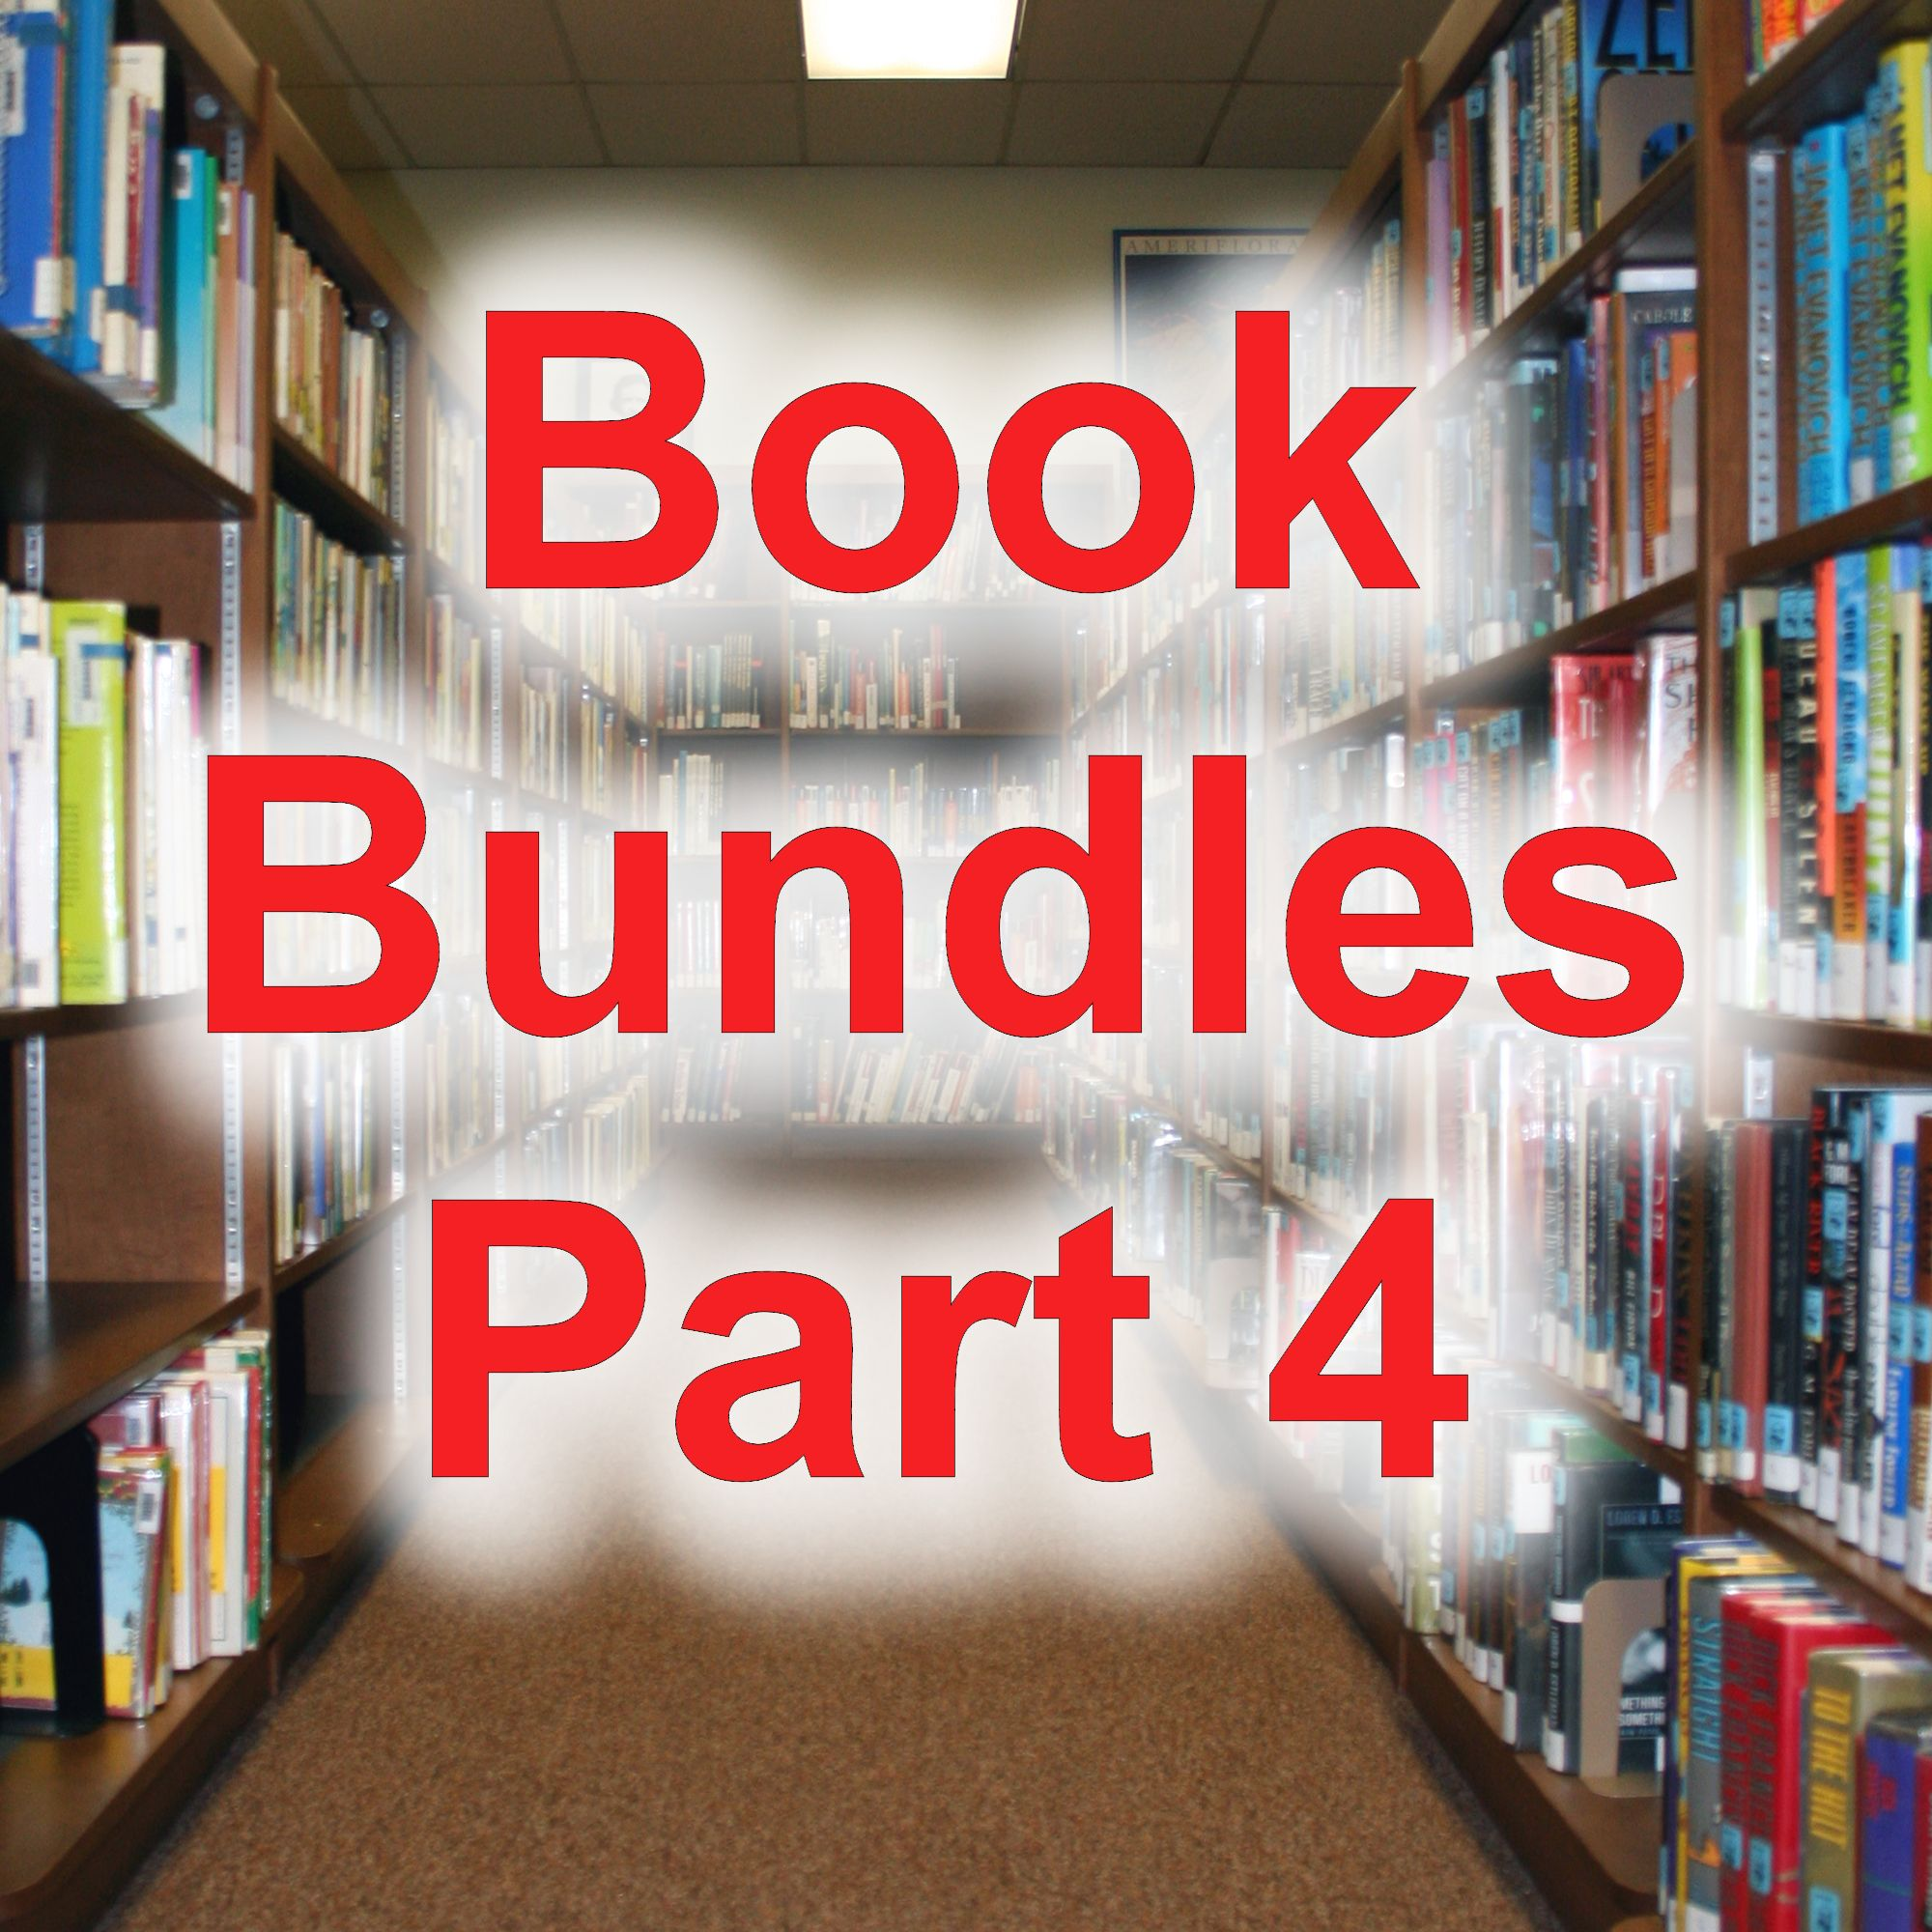 Book Bundles Part 4